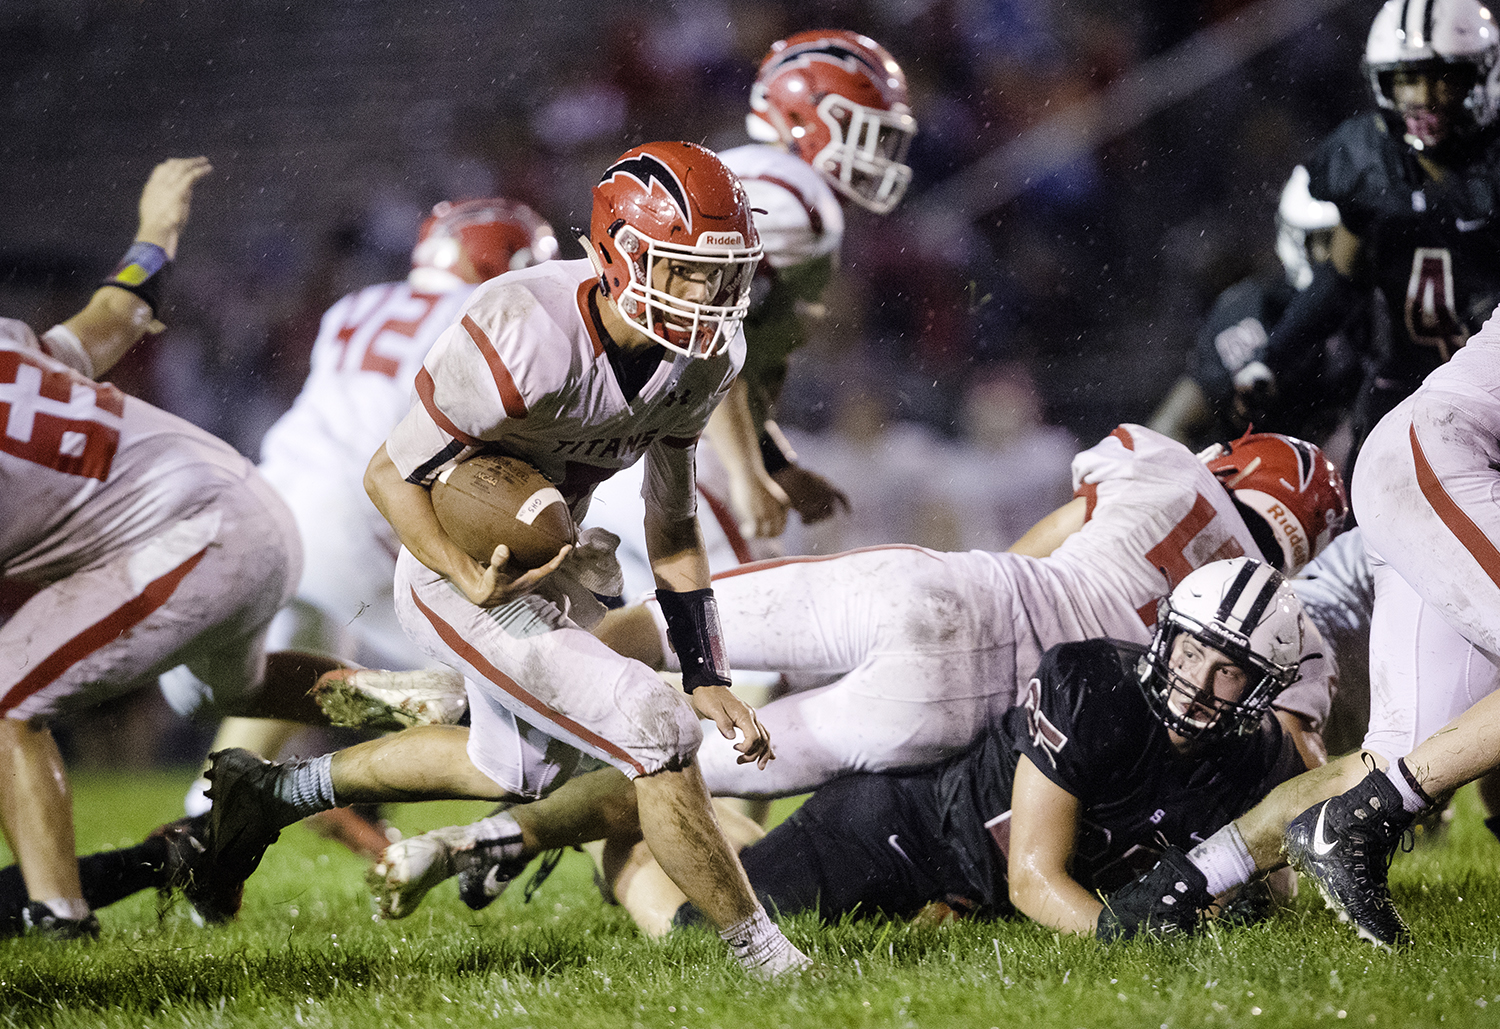 Glenwood's Luke Lehnen finds a hole as he rushes against Springfield at Memorial Stadium Friday, Sept. 7, 2018. [Ted Schurter/The State Journal-Register]